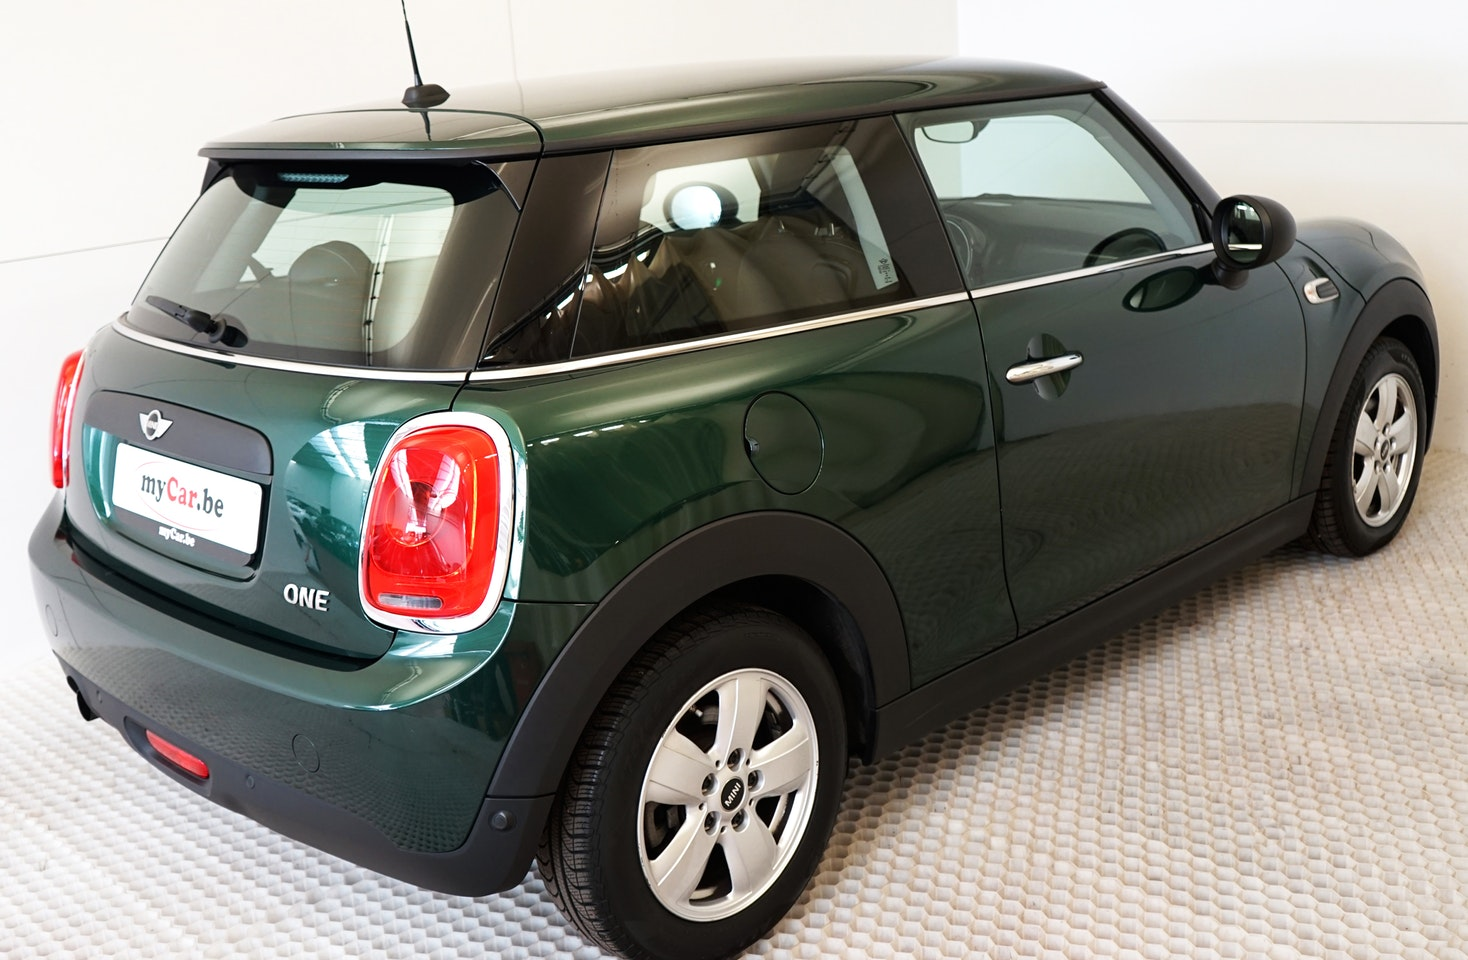 mycar-braine-lalleud-voitures-occasion-mini-cooper-one-first-6